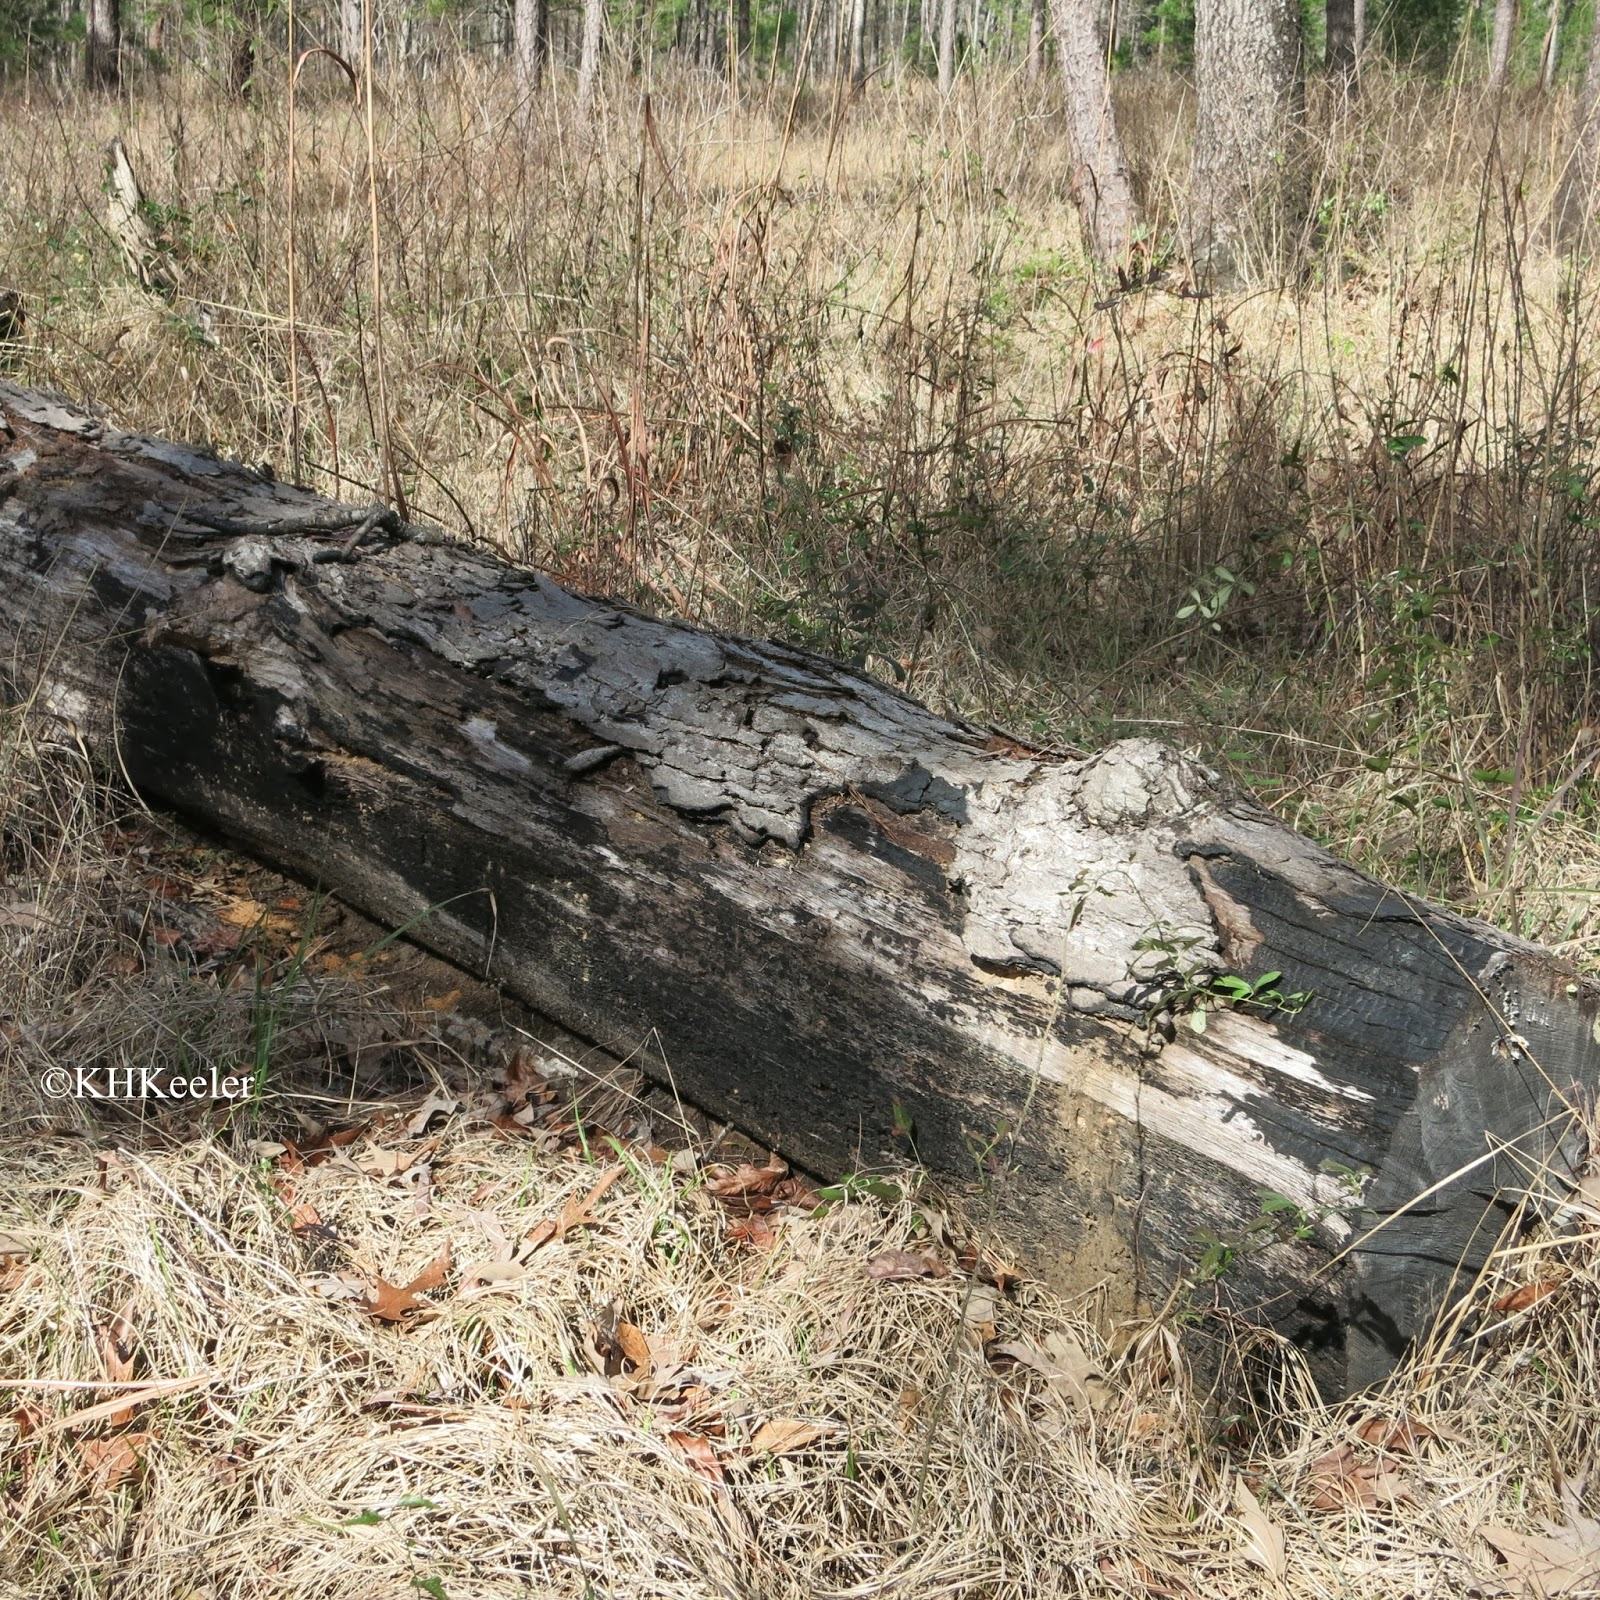 burned log indicates past fire